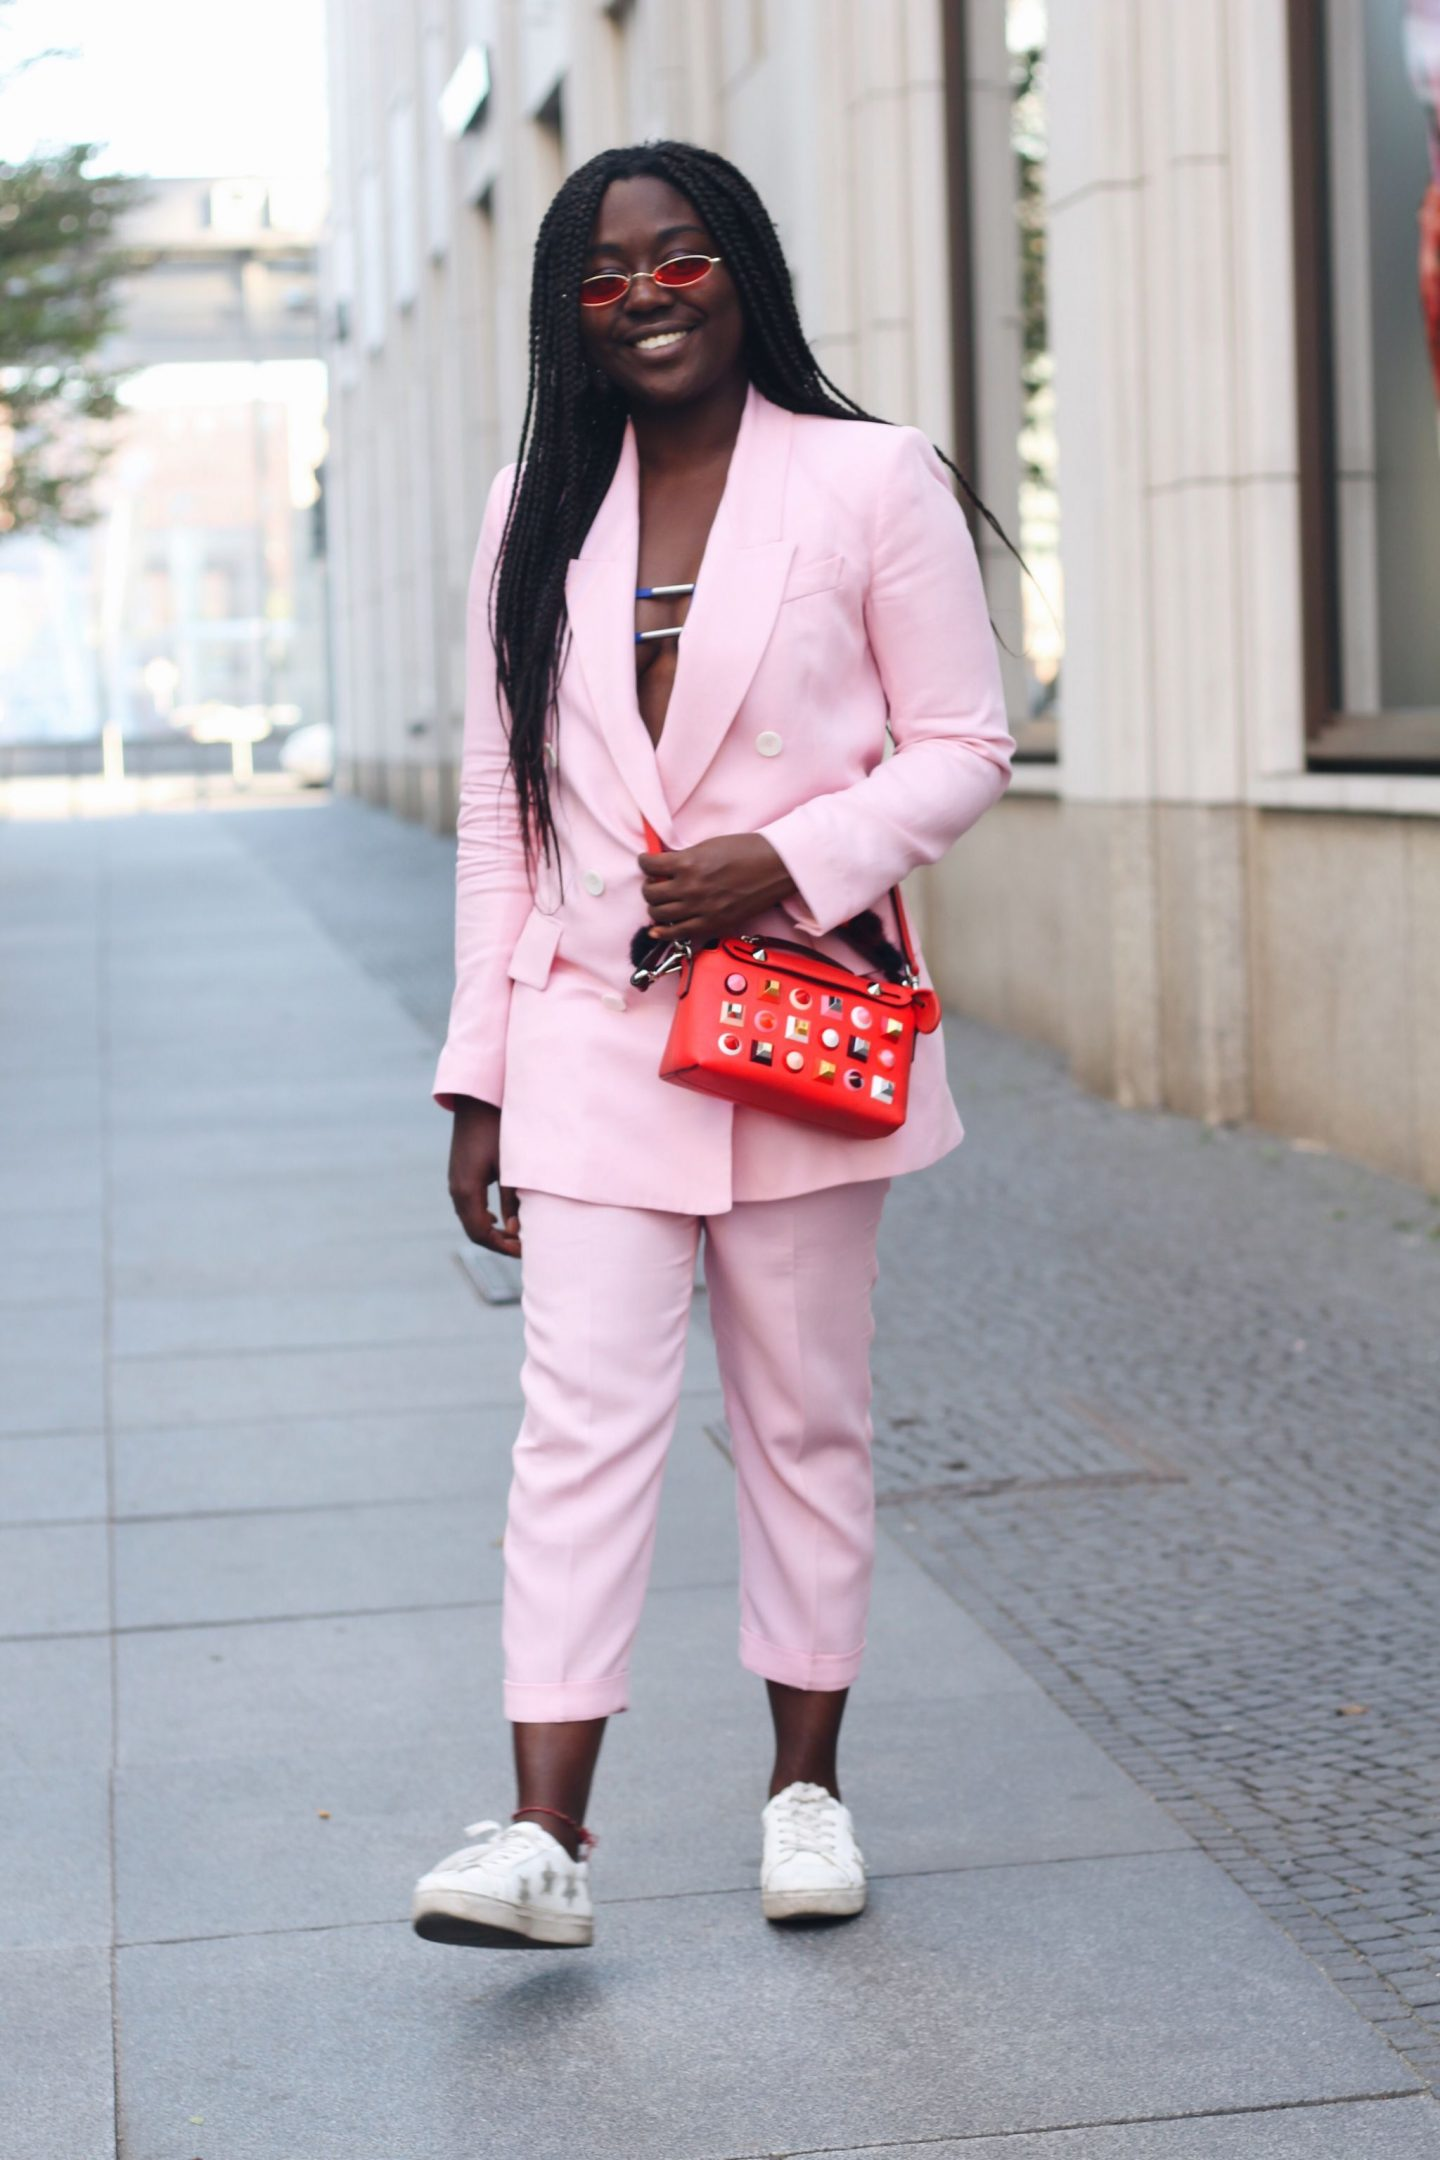 Lois_Opoku_pink_suit_fendi_by_the_way_bag_fasion_week_street_style_lisforlois_7